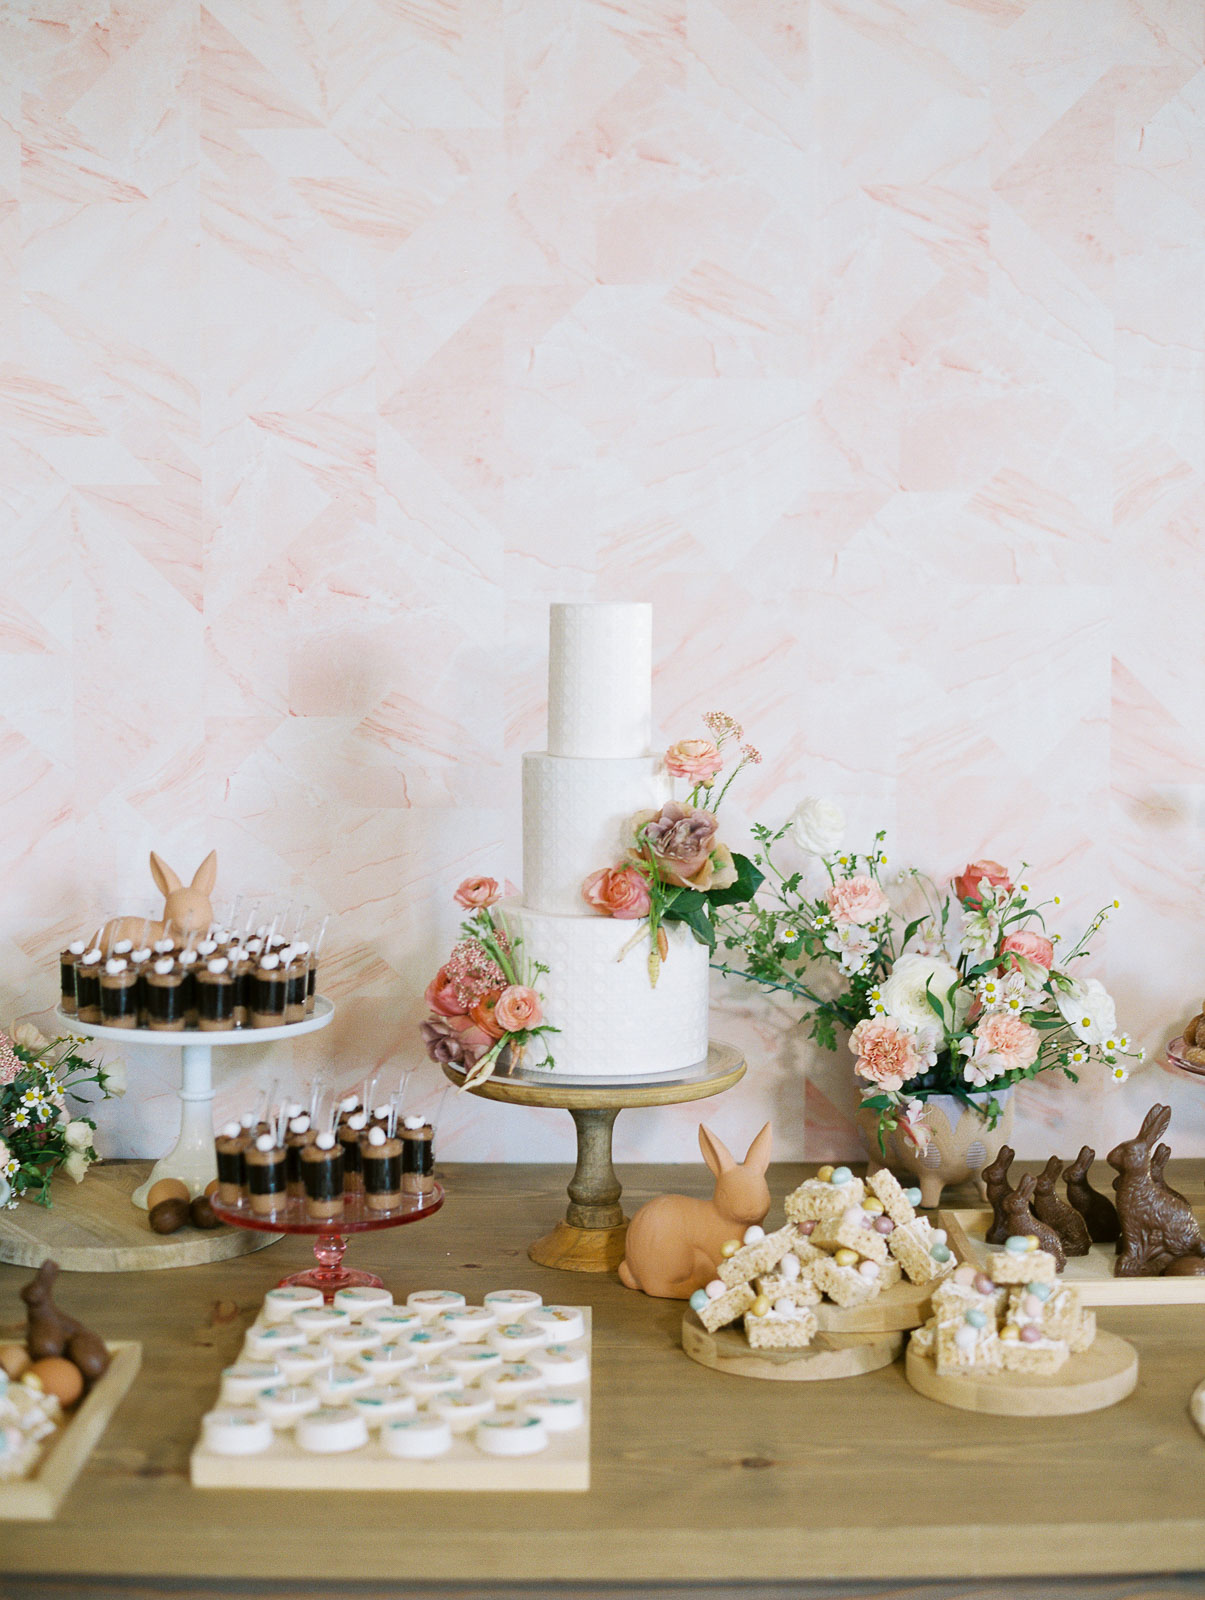 three tiered white wedding cake on dessert table with pink flowers